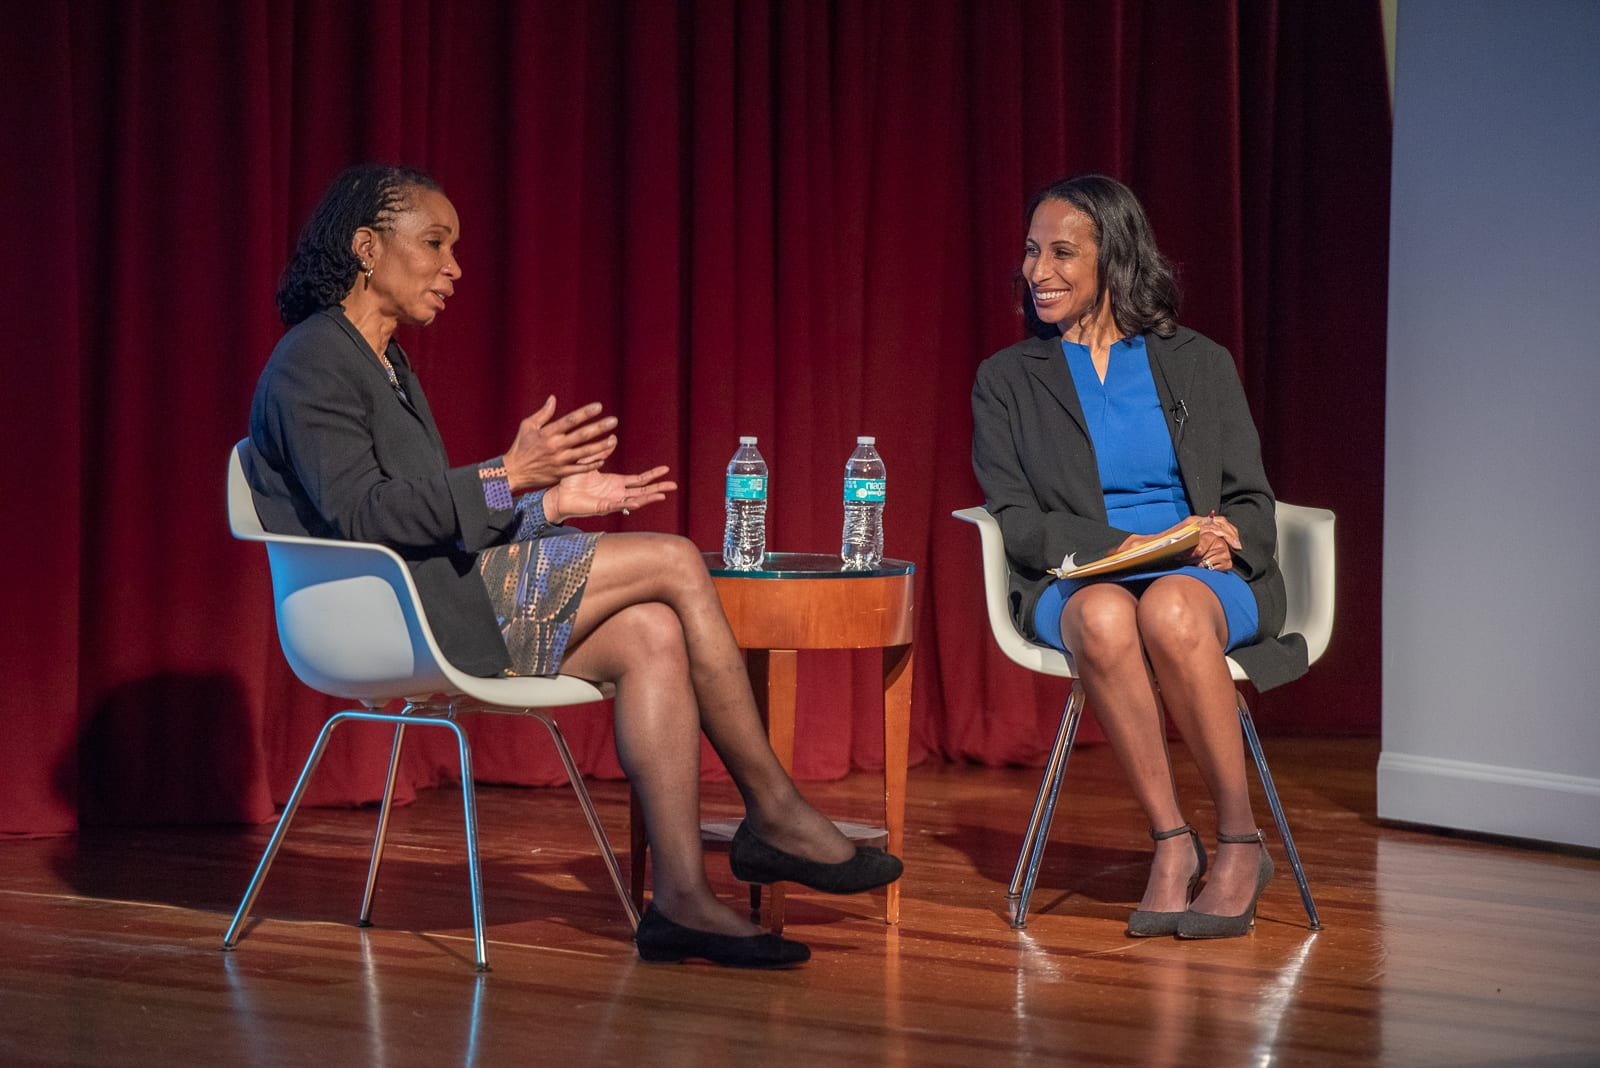 Dr. Helene Gayle and Dr. Una Osili discuss social impact, diversity, and philanthropy at the first event of the Diversity Speaker Series.